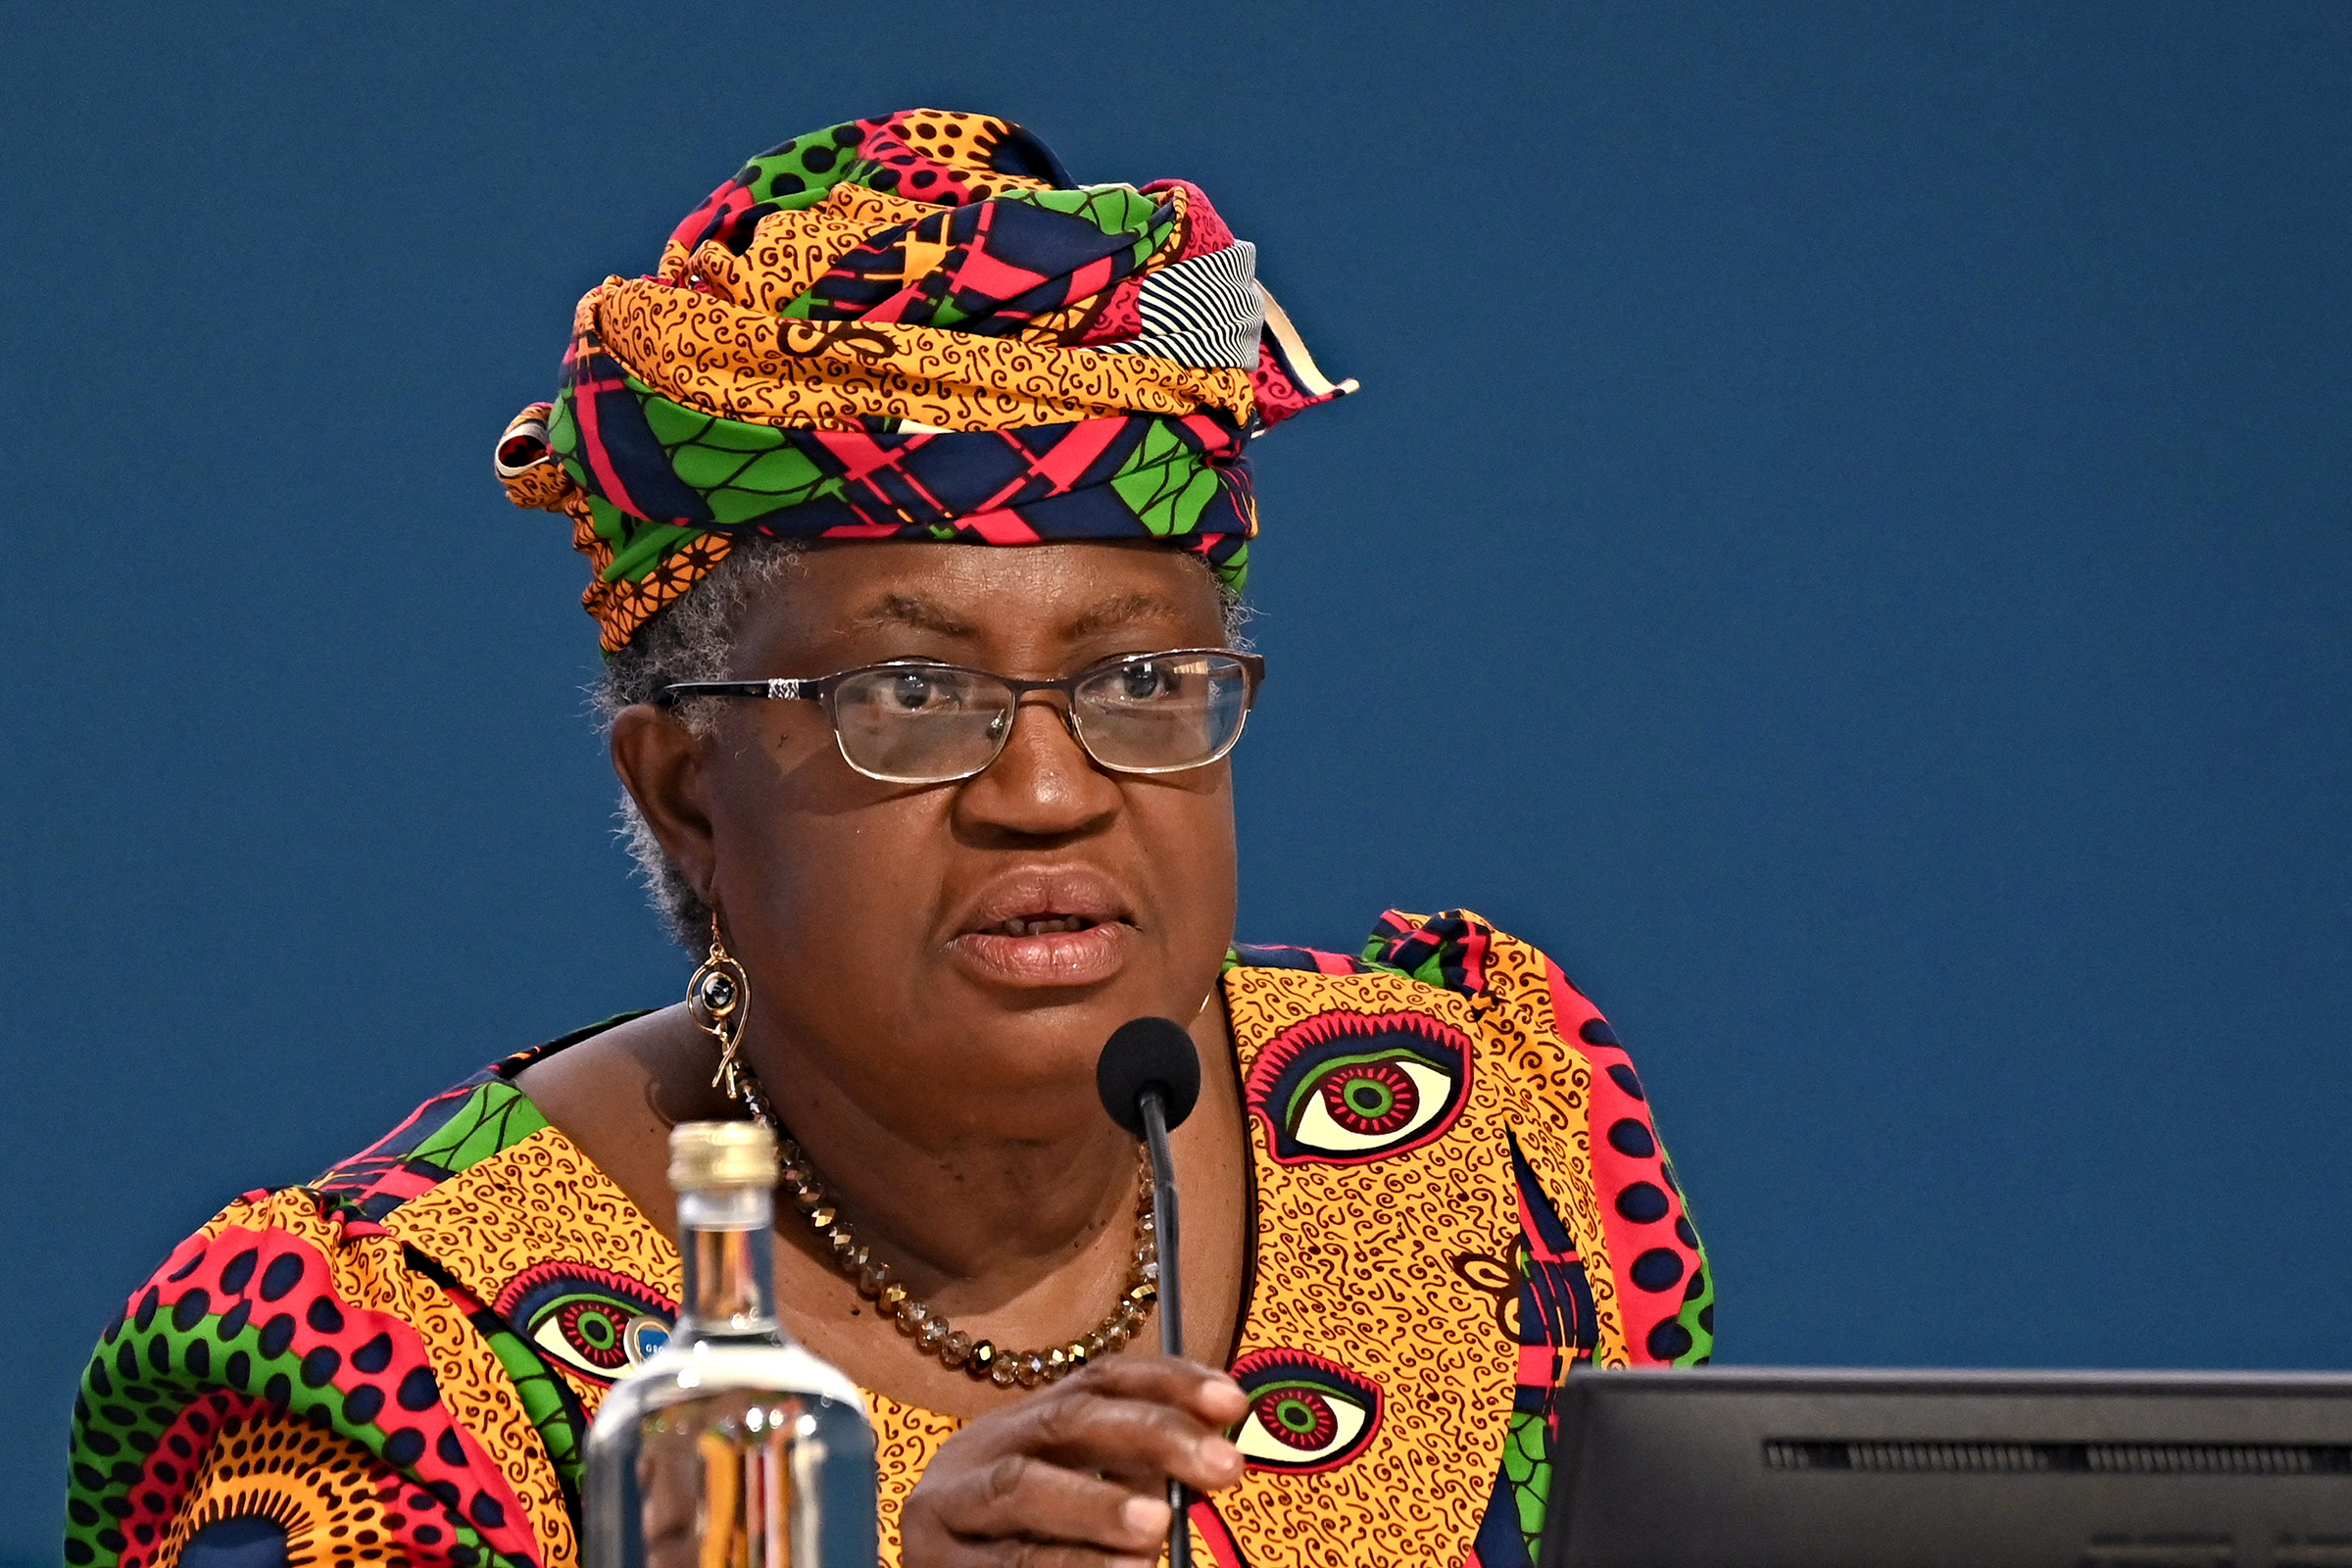 Director-general of the World Trade Organization Ngozi Okonjo-Iweala speaks during the press conference in Venice, Italy on July 9.